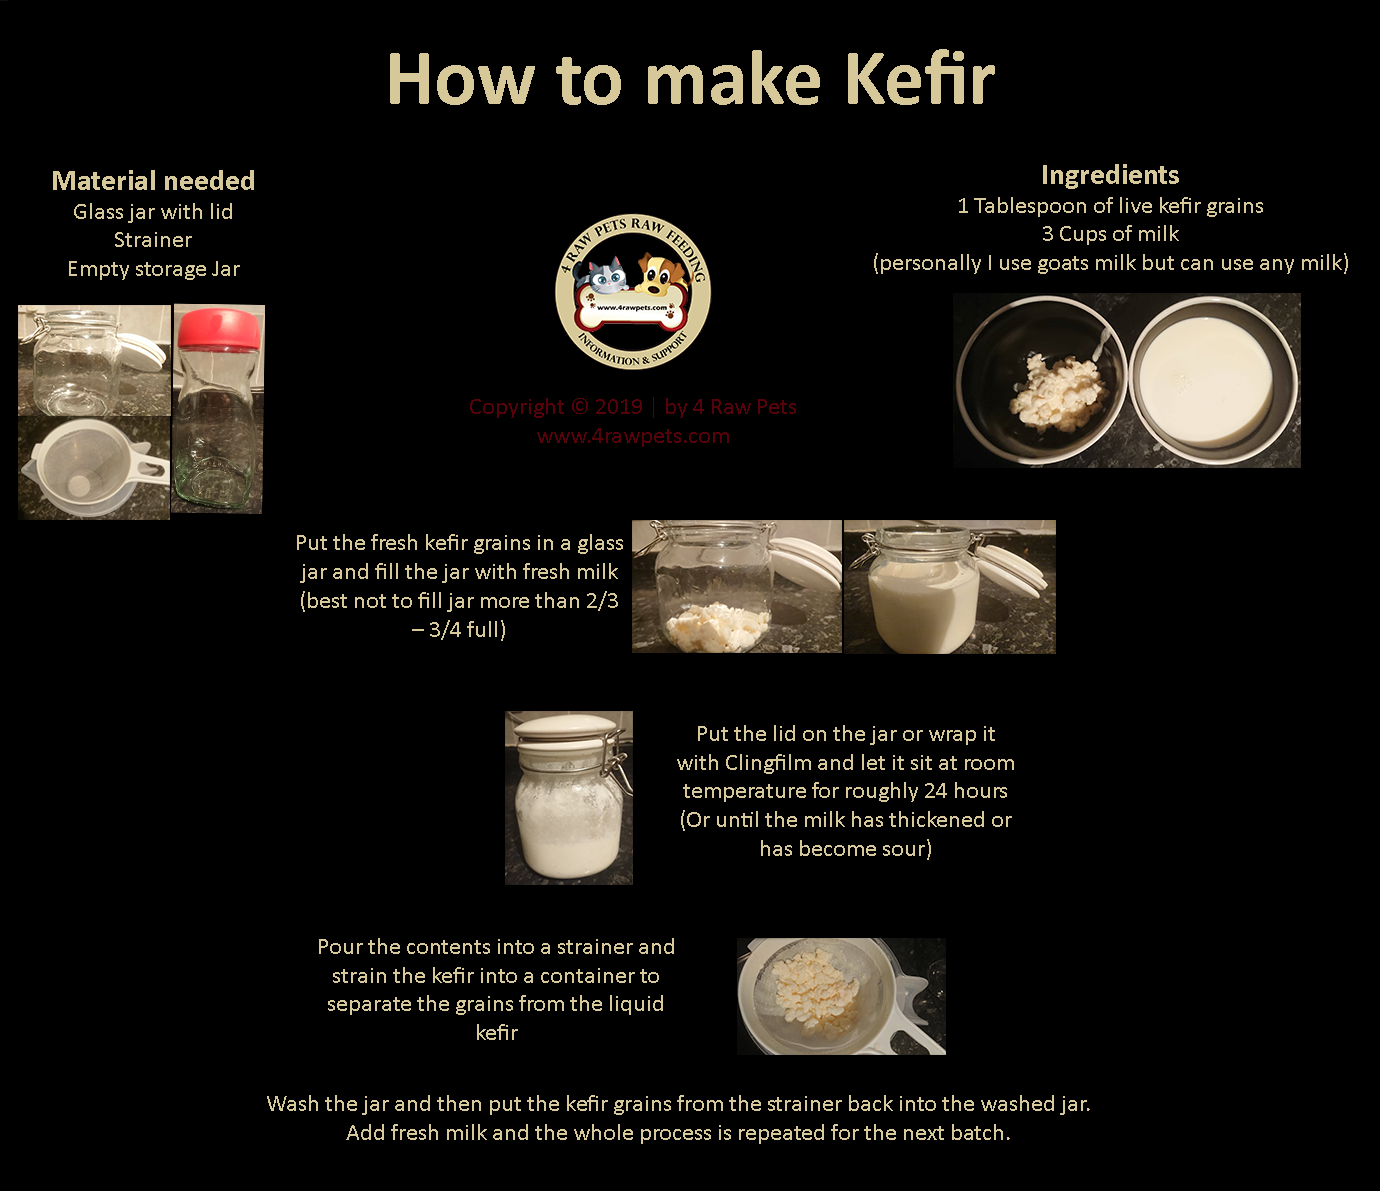 how-to-make-kefit